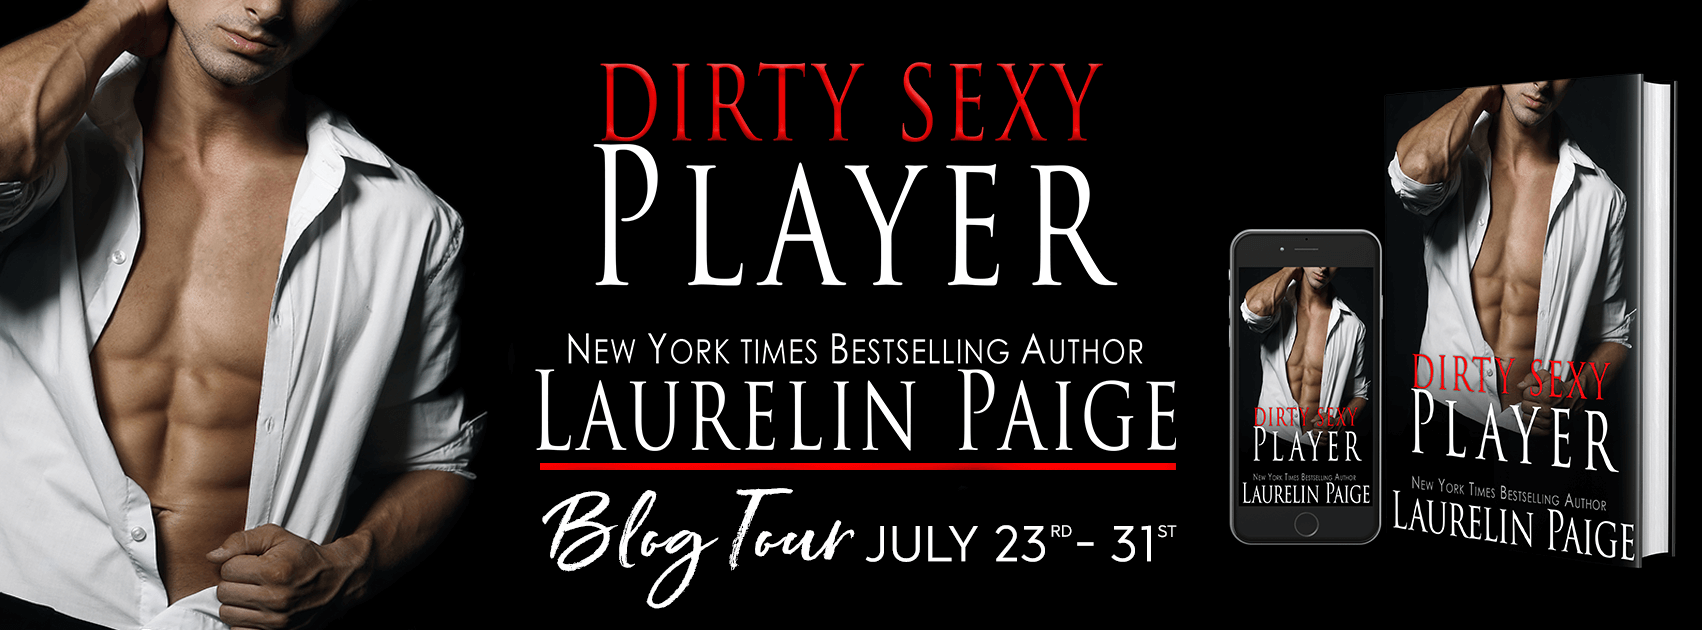 Dirty Sexy Player by Laurelin Paige